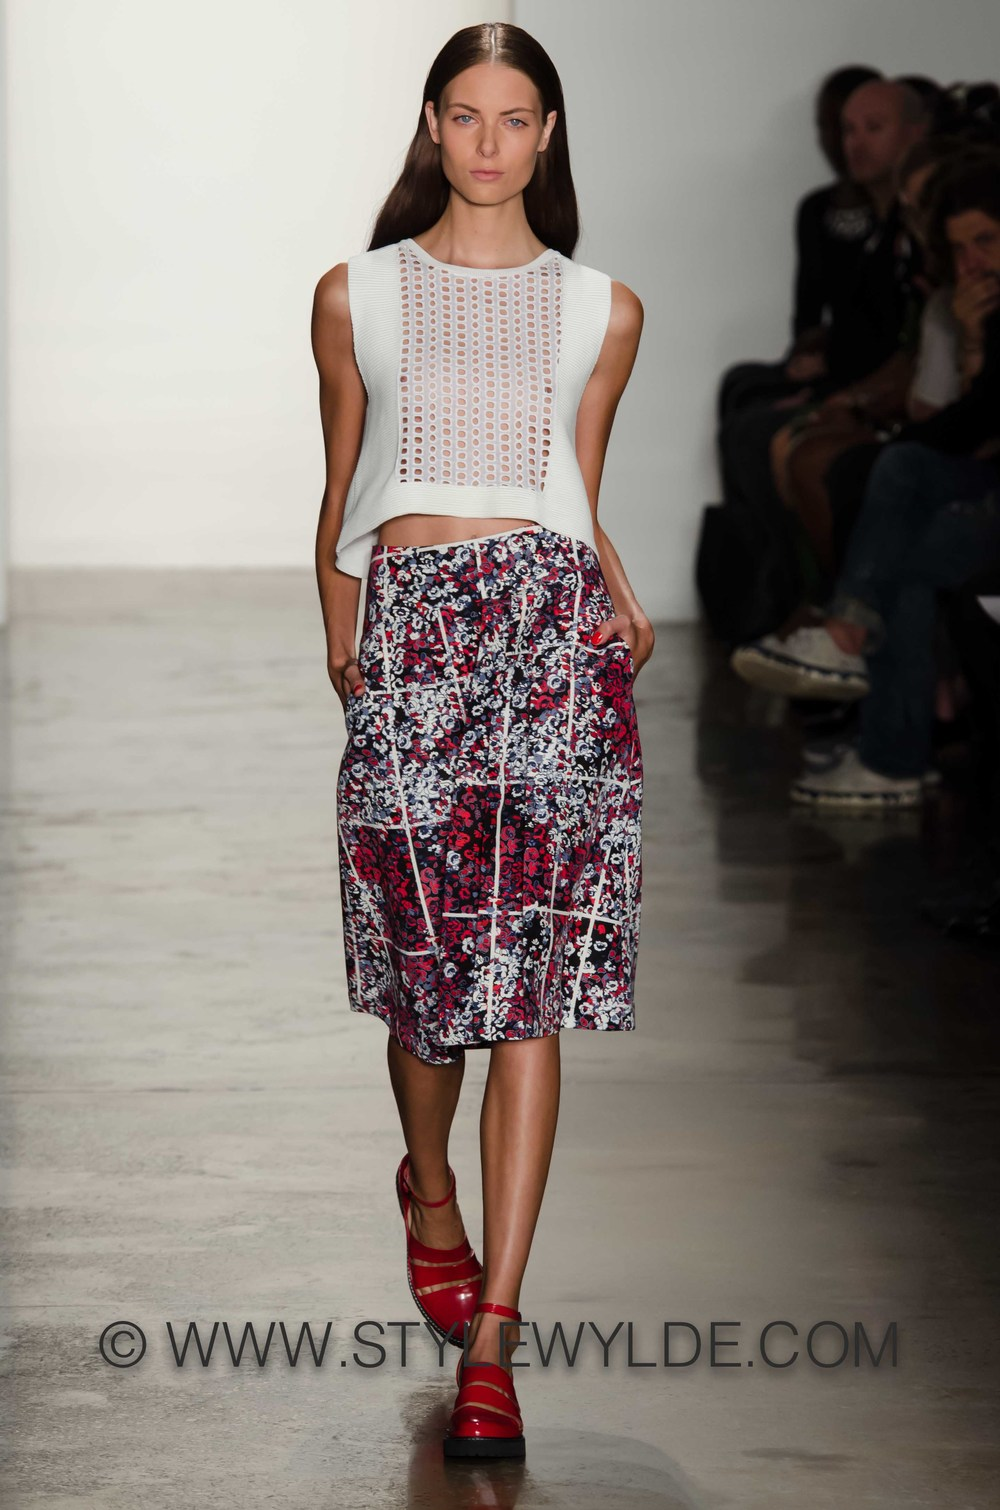 stylewylde_timo_weiland_gallery_ss2014-25.jpg